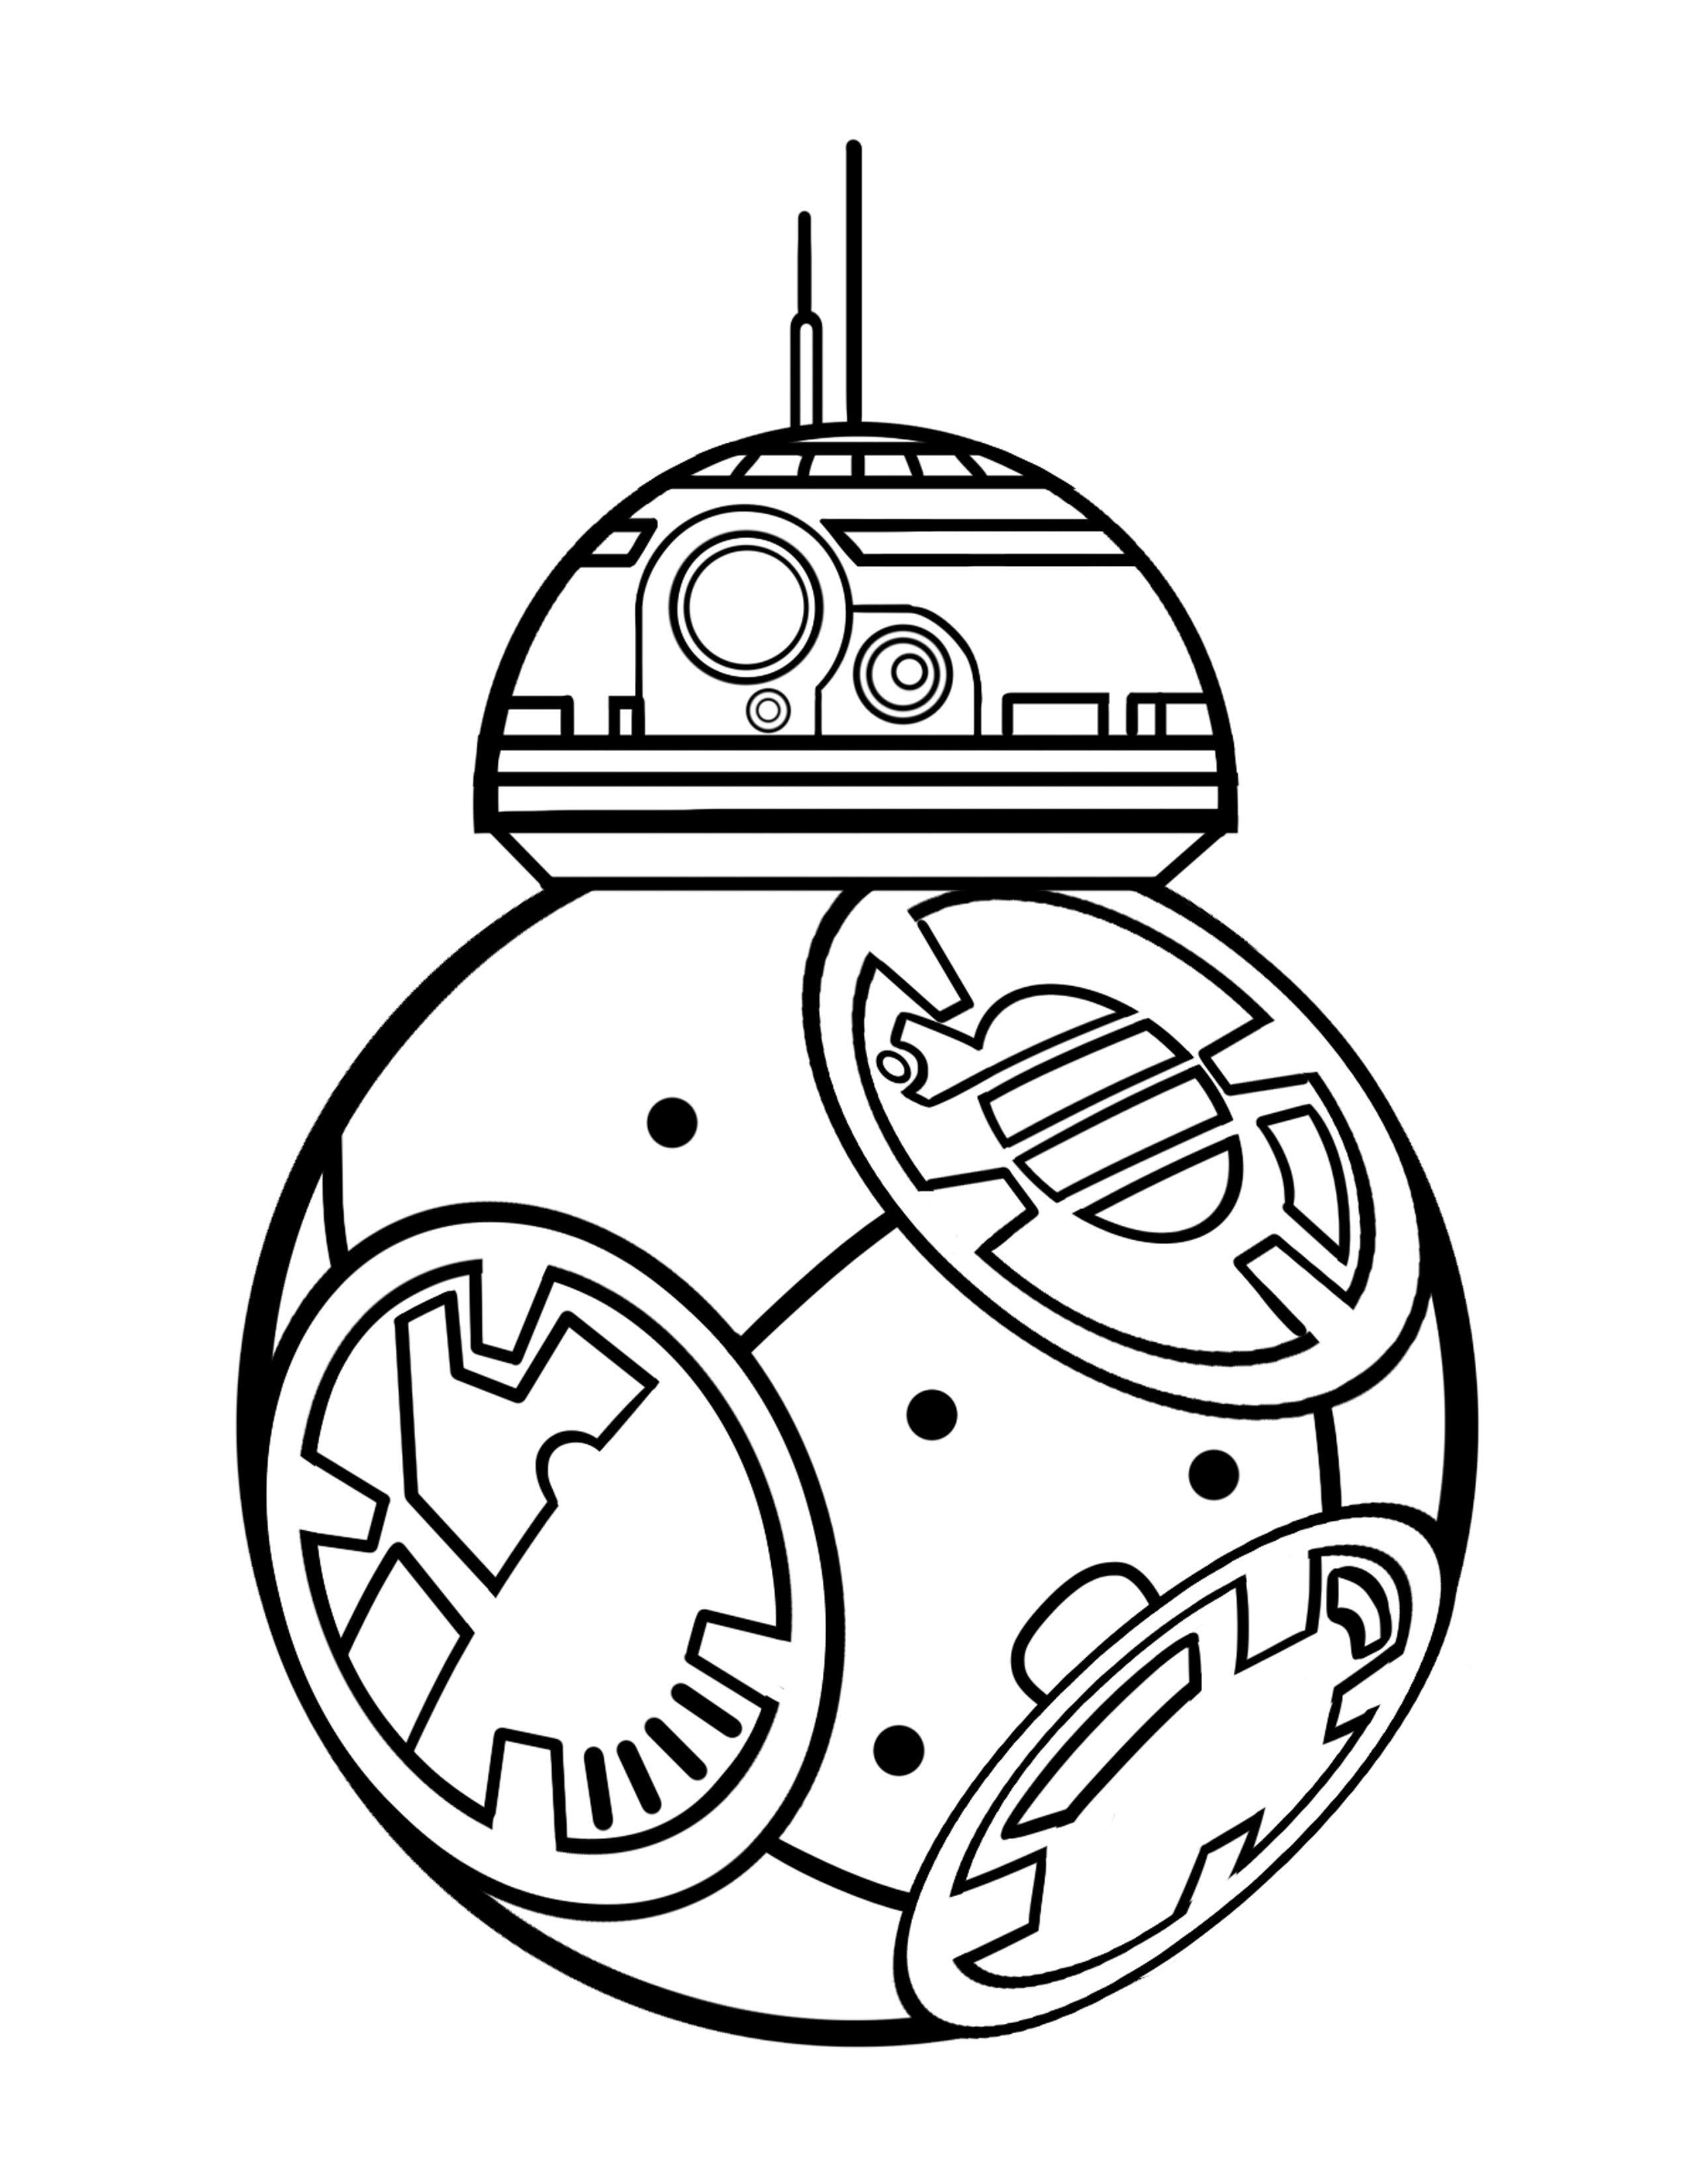 Coloring Pages Bb 8 : BB8.jpg 2,550x3,300 pixels Colouring pages Pinterest